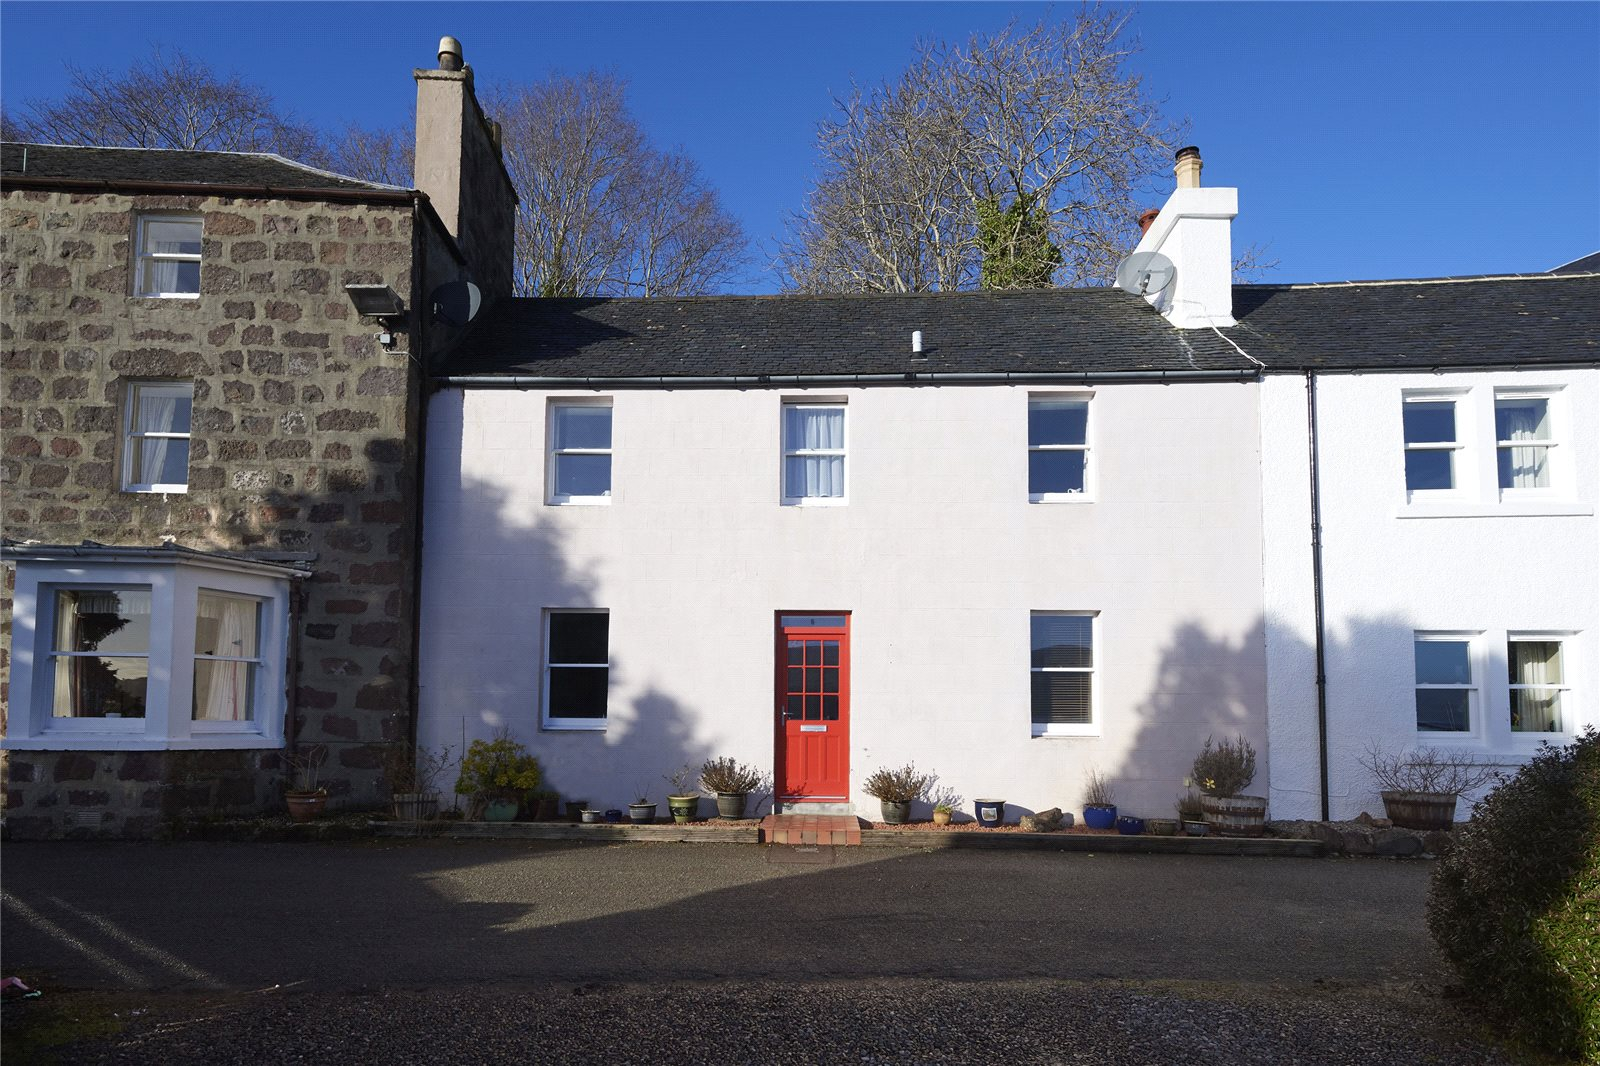 4 Bedrooms Terraced House for sale in Wave Crest, 6 Beaumont Crescent, Portree, IV51